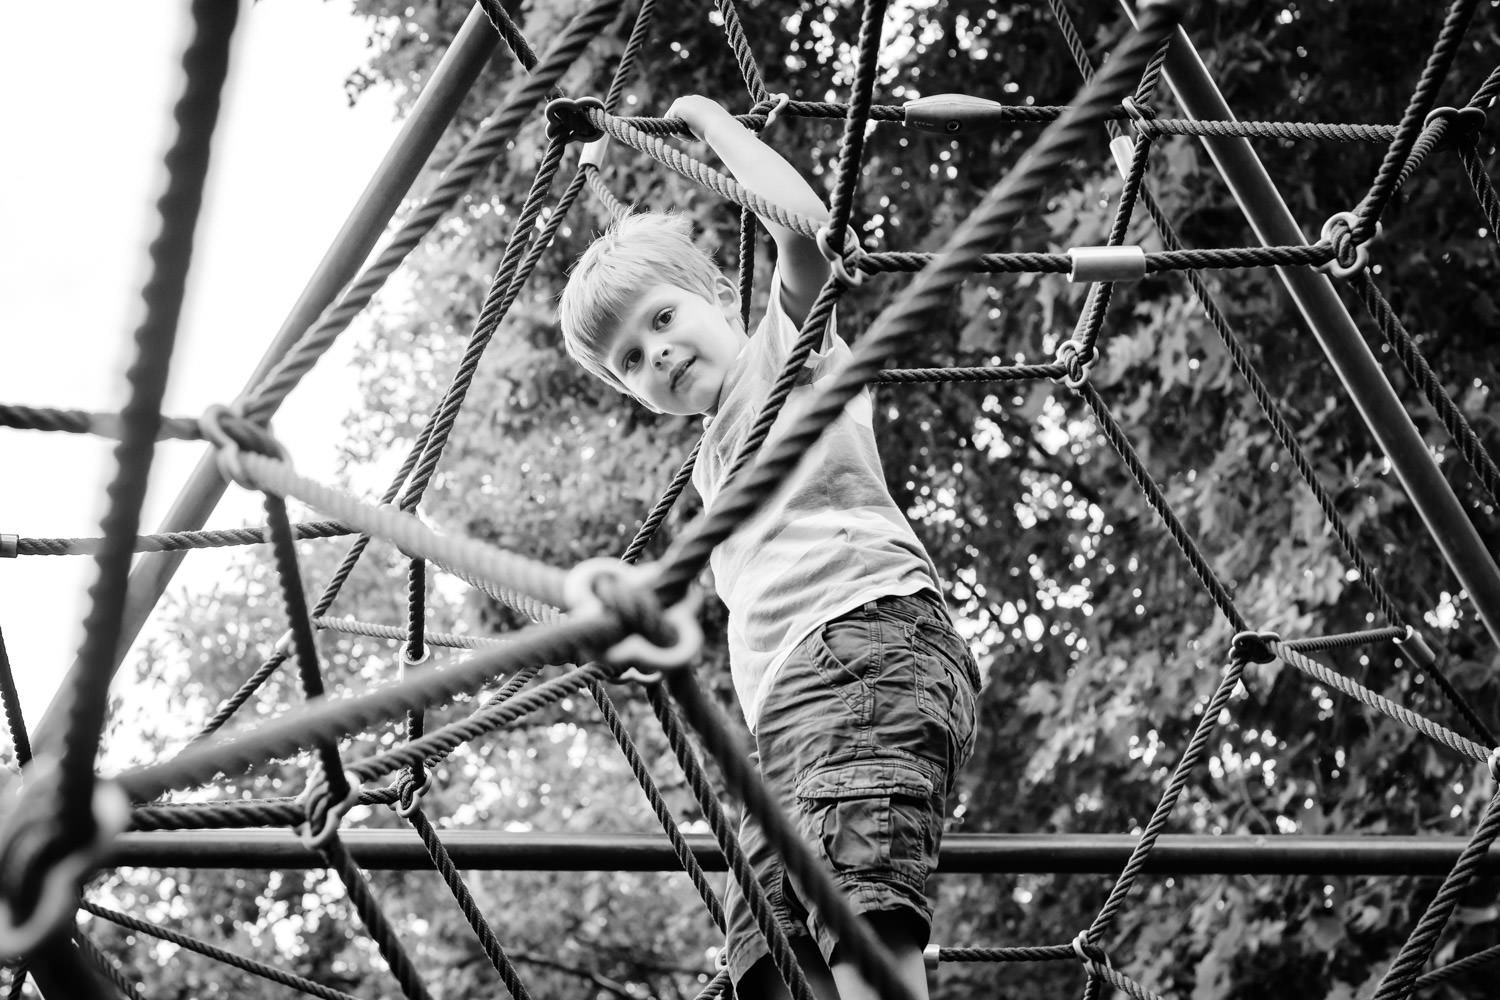 Boy peering through rope climbing frame at camera